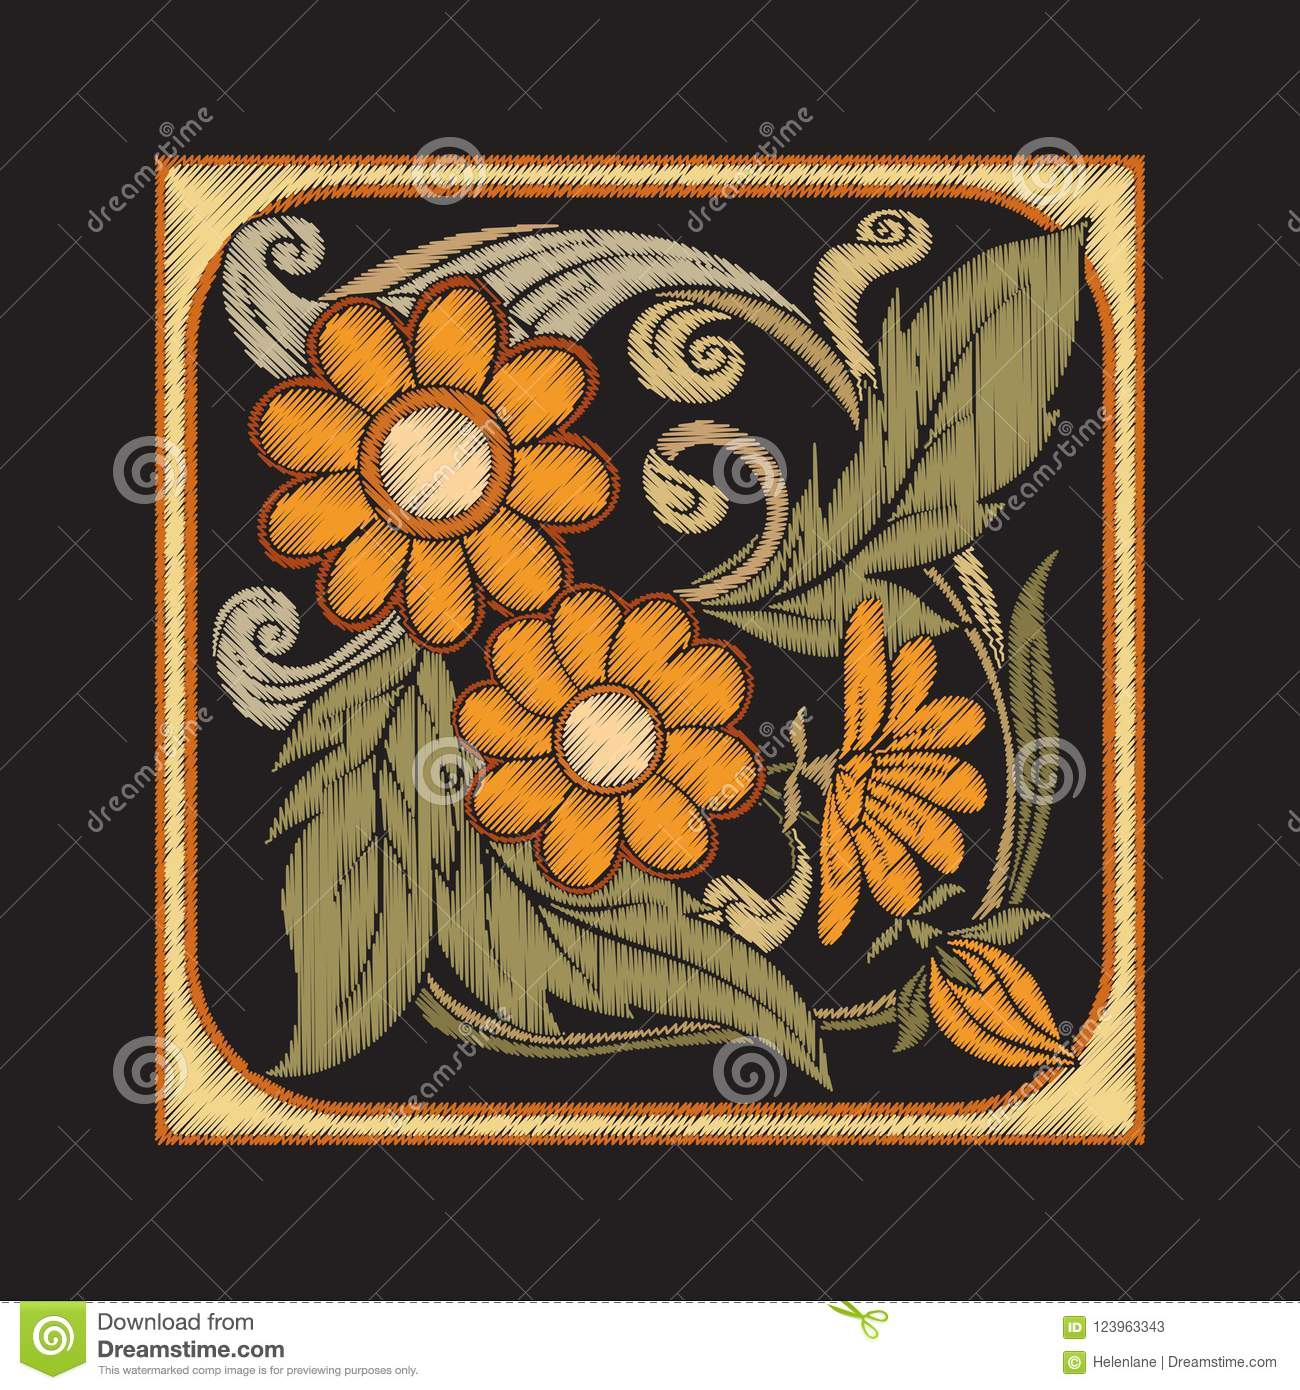 Embroidery With Decorative Elements In The Style Of Ceramic Tile